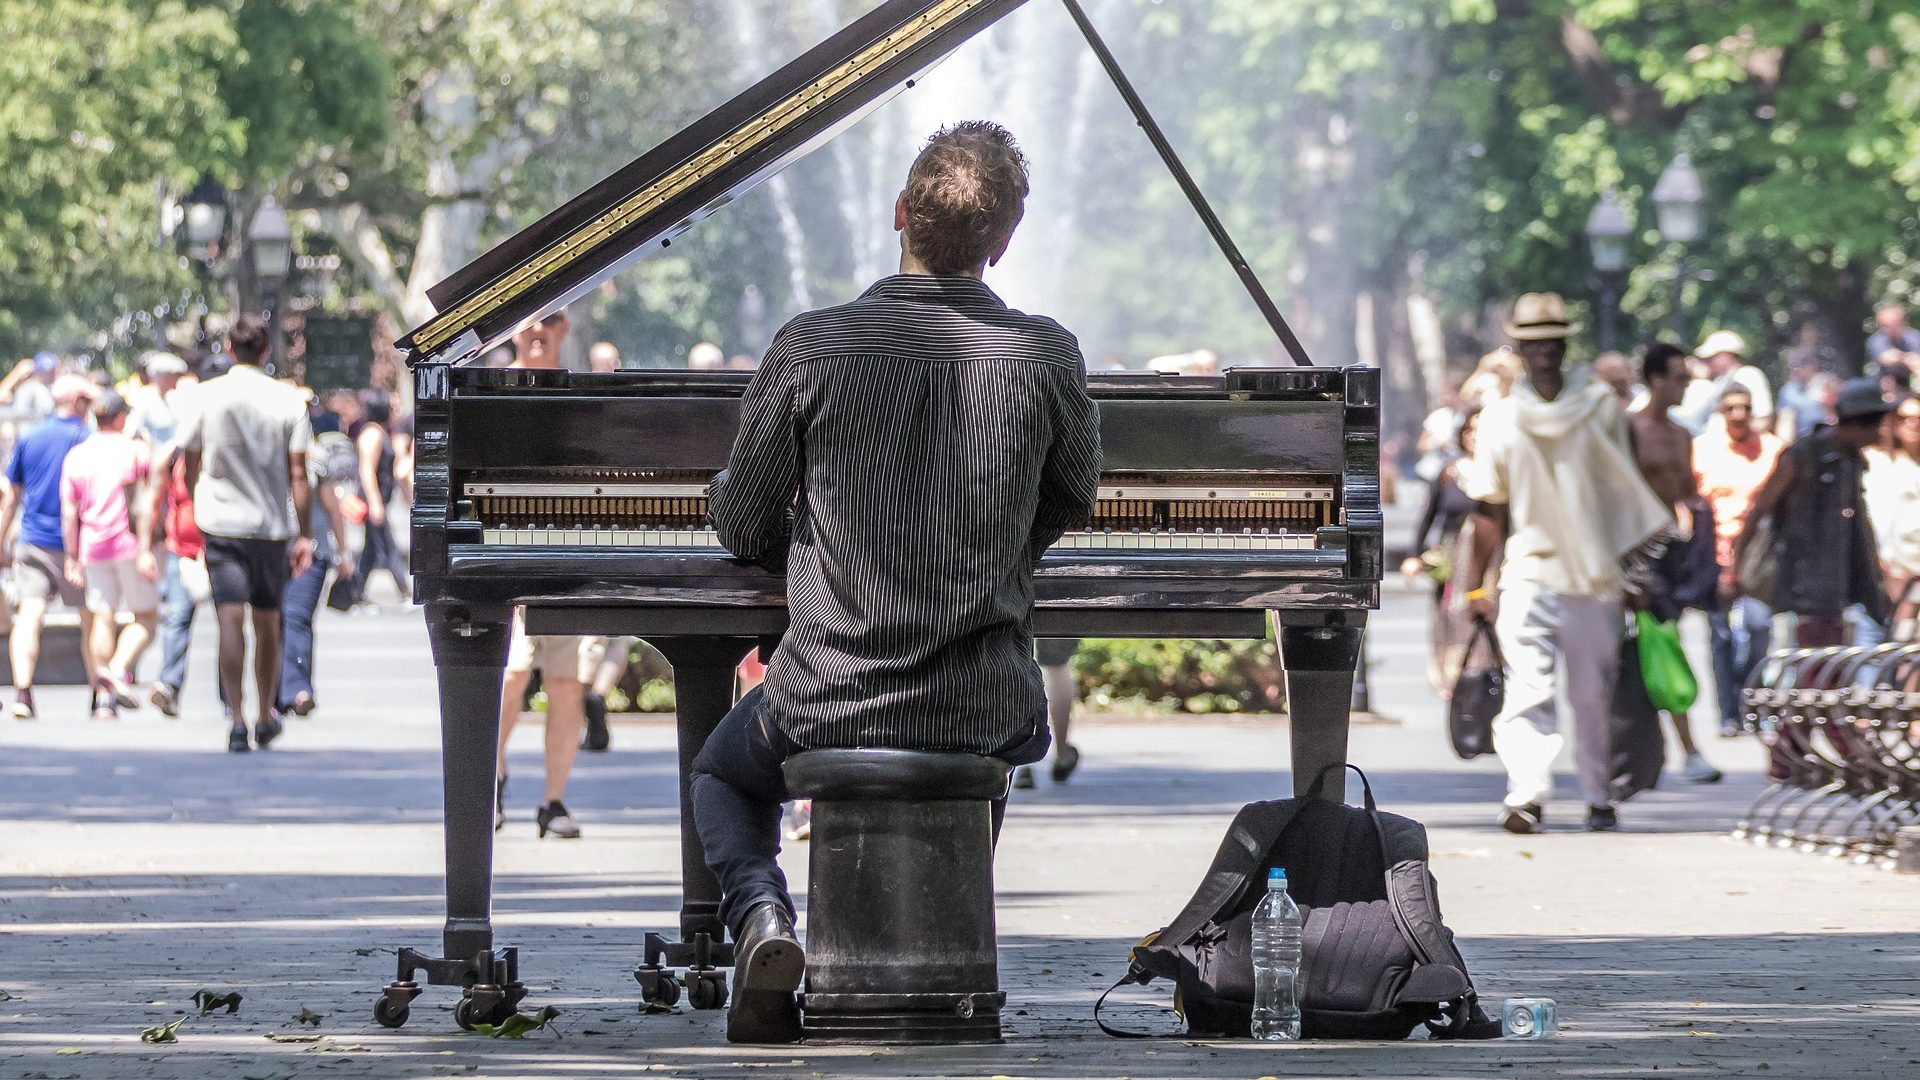 Image: Man playing piano in the middle of a park